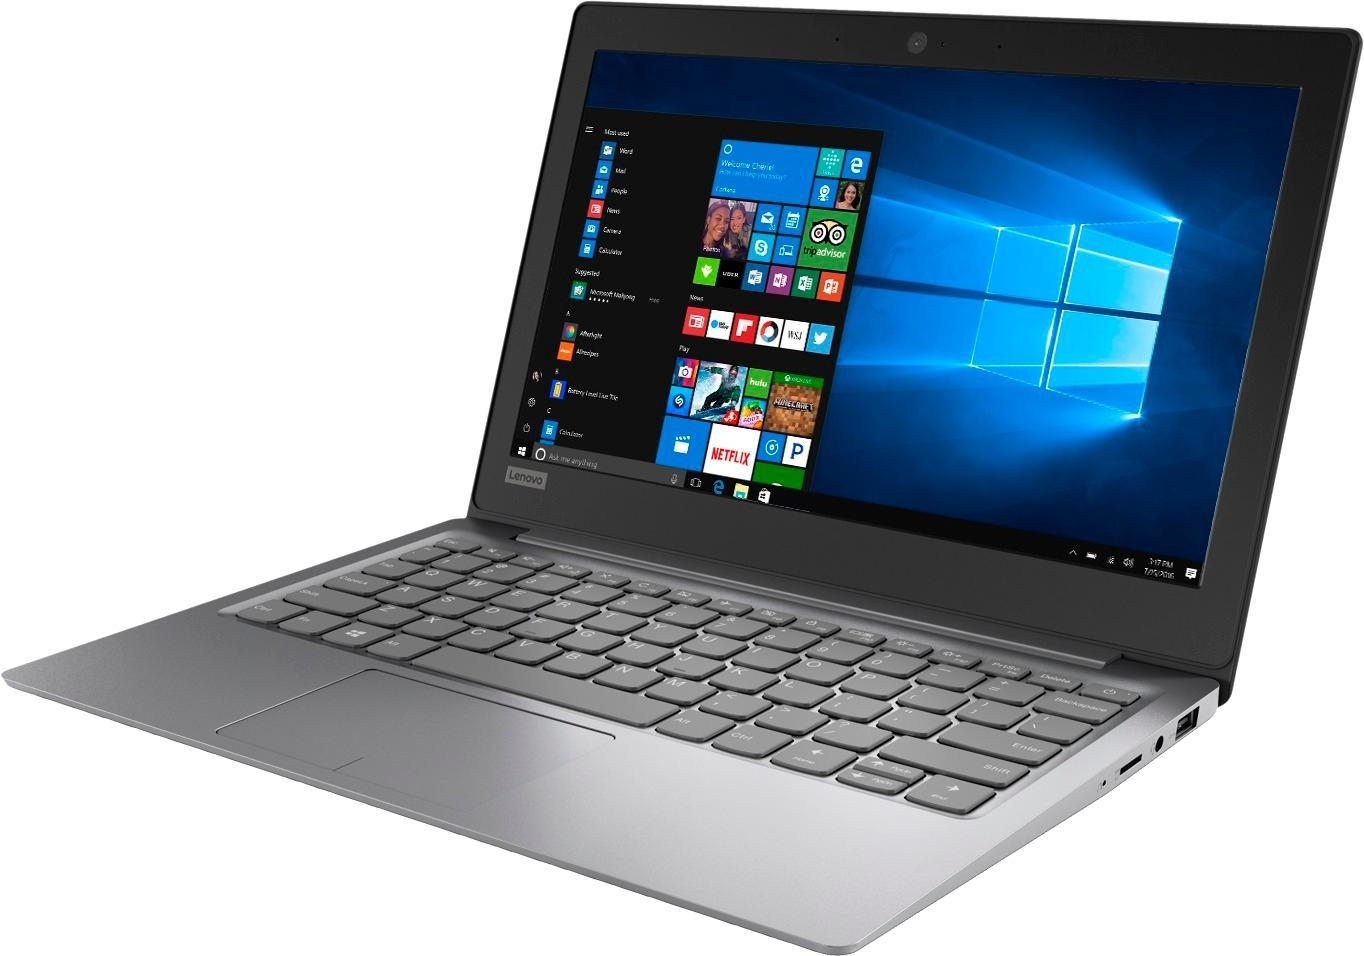 Image result for Lenovo Ideapad 120s 11.6""